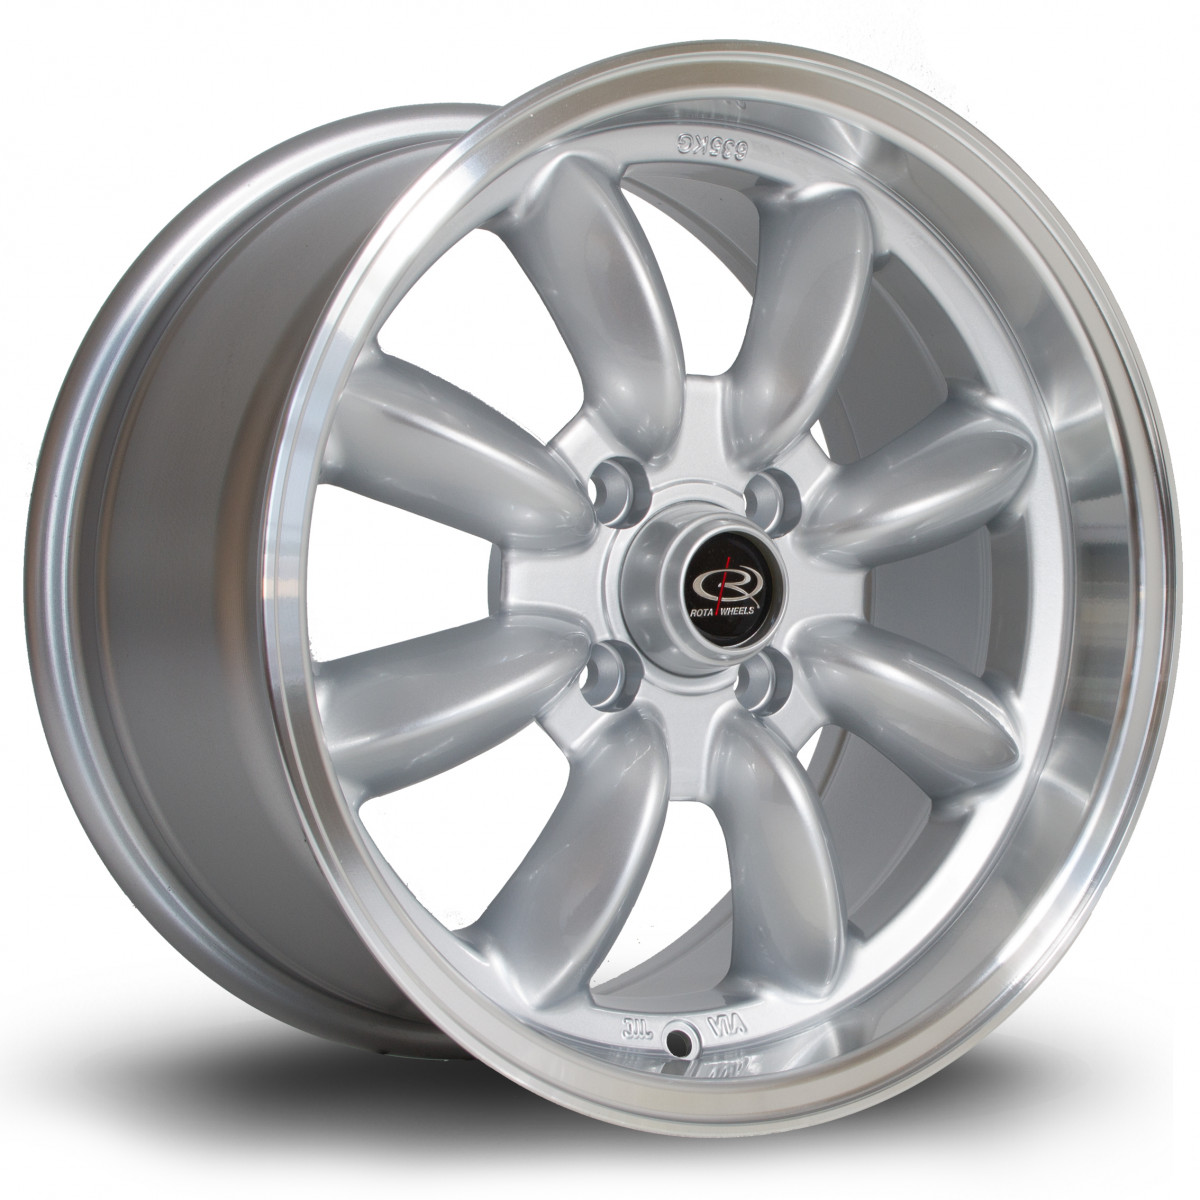 RB 15x7 4x110 ET4 Silver with Polished Lip